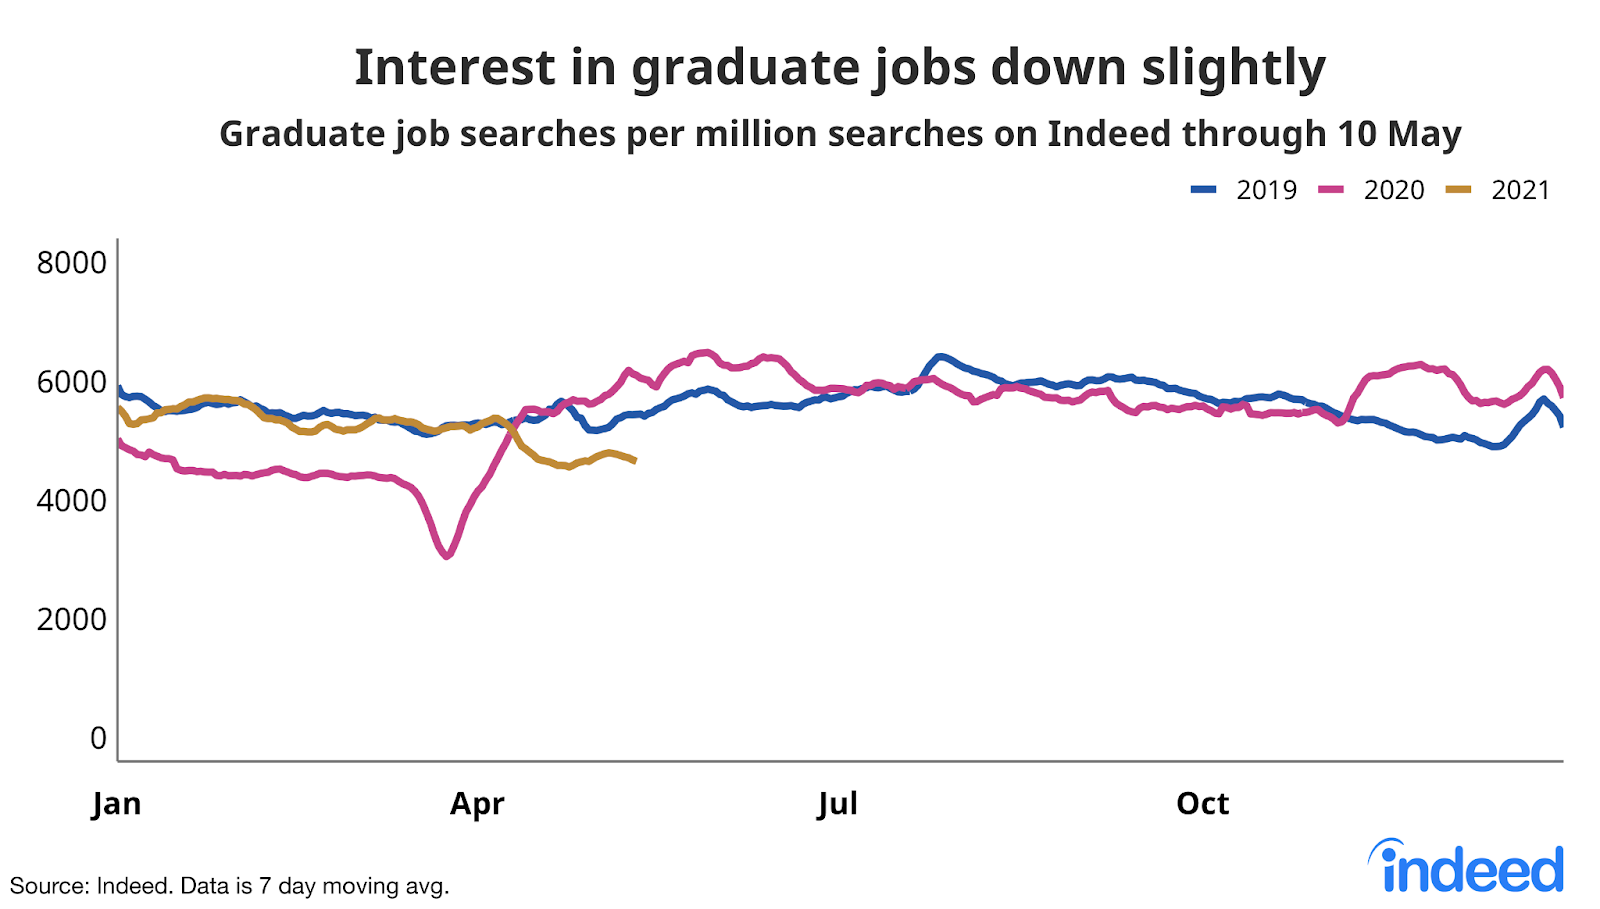 Line graph showing interest in graduate jobs down slightly